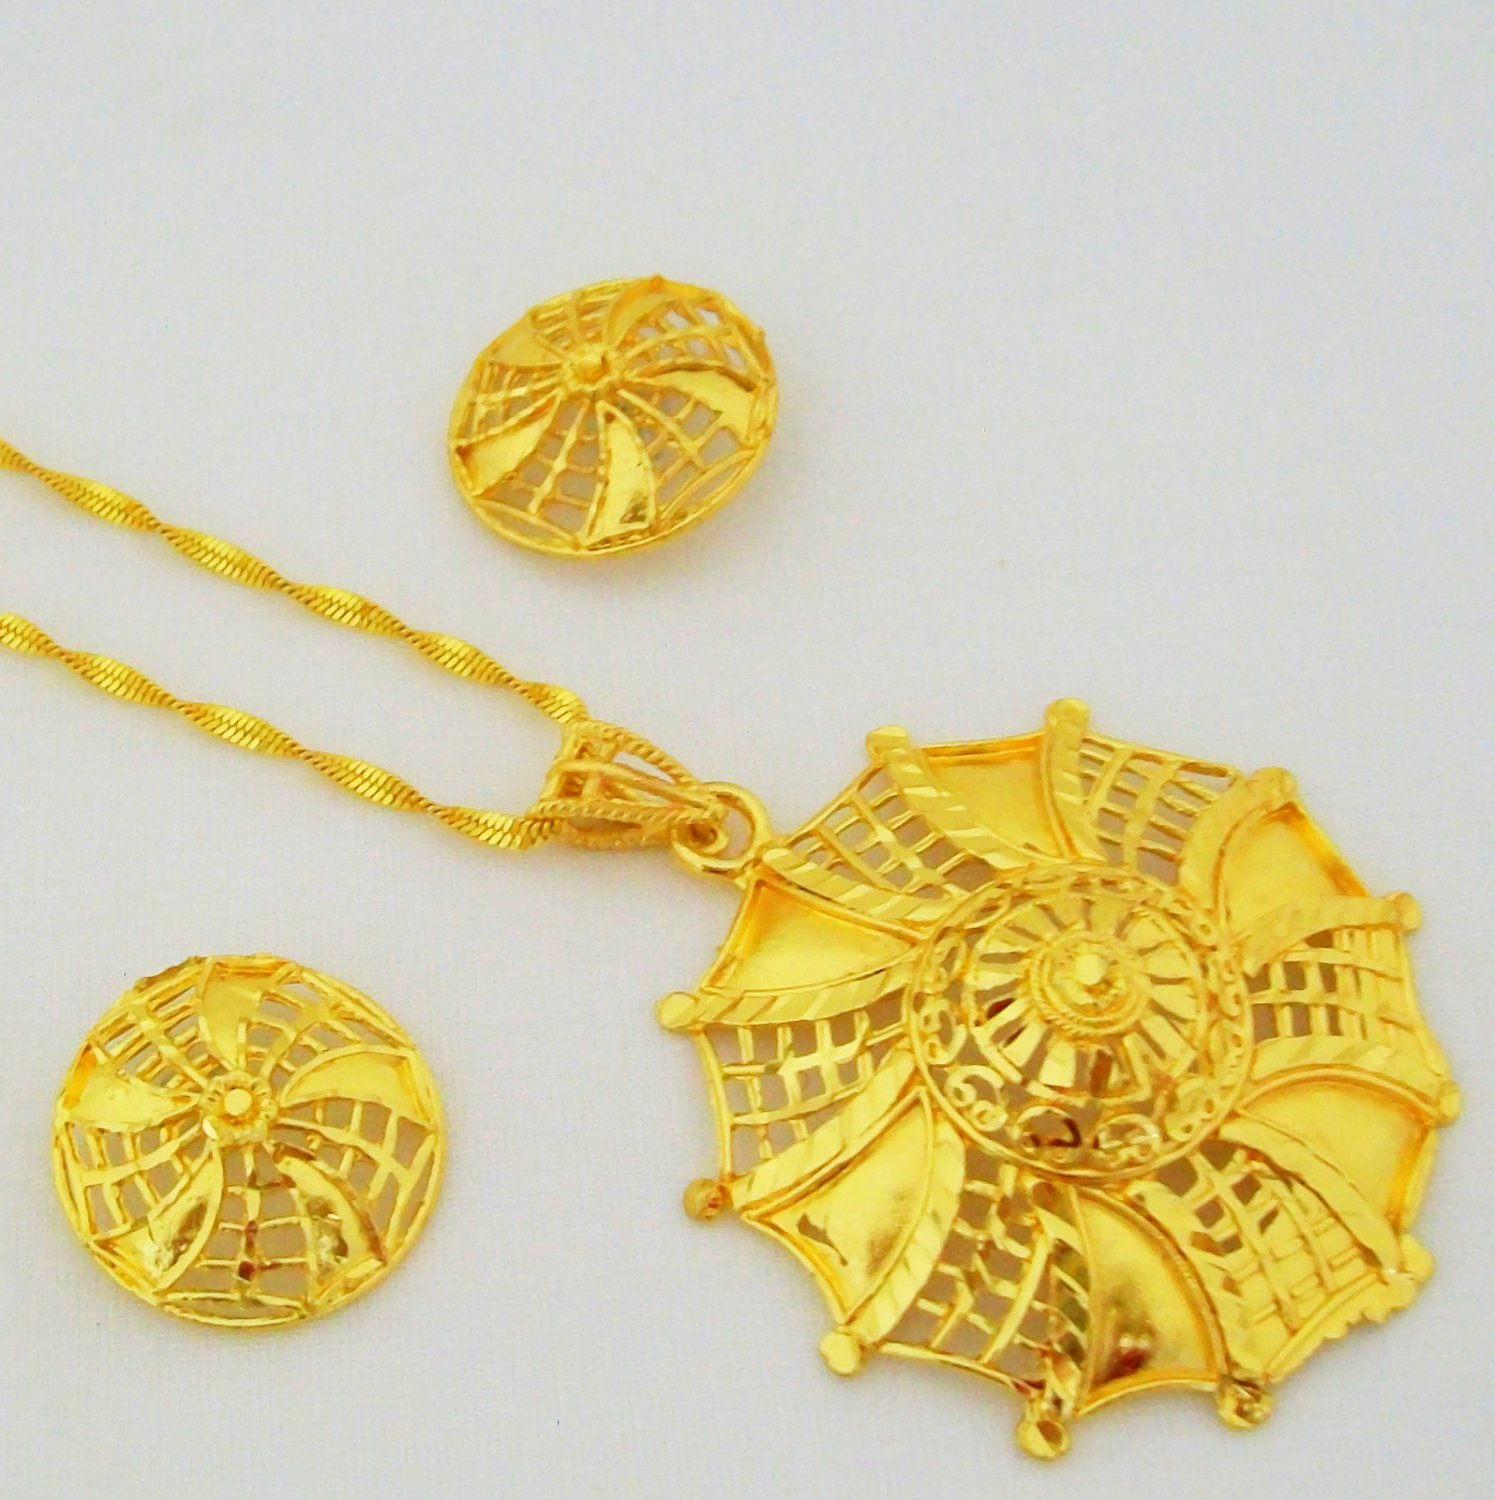 Swirl Pattern Filigree Cutwork Gold Plated Chain Pendant Necklace Indian Jewelry Set